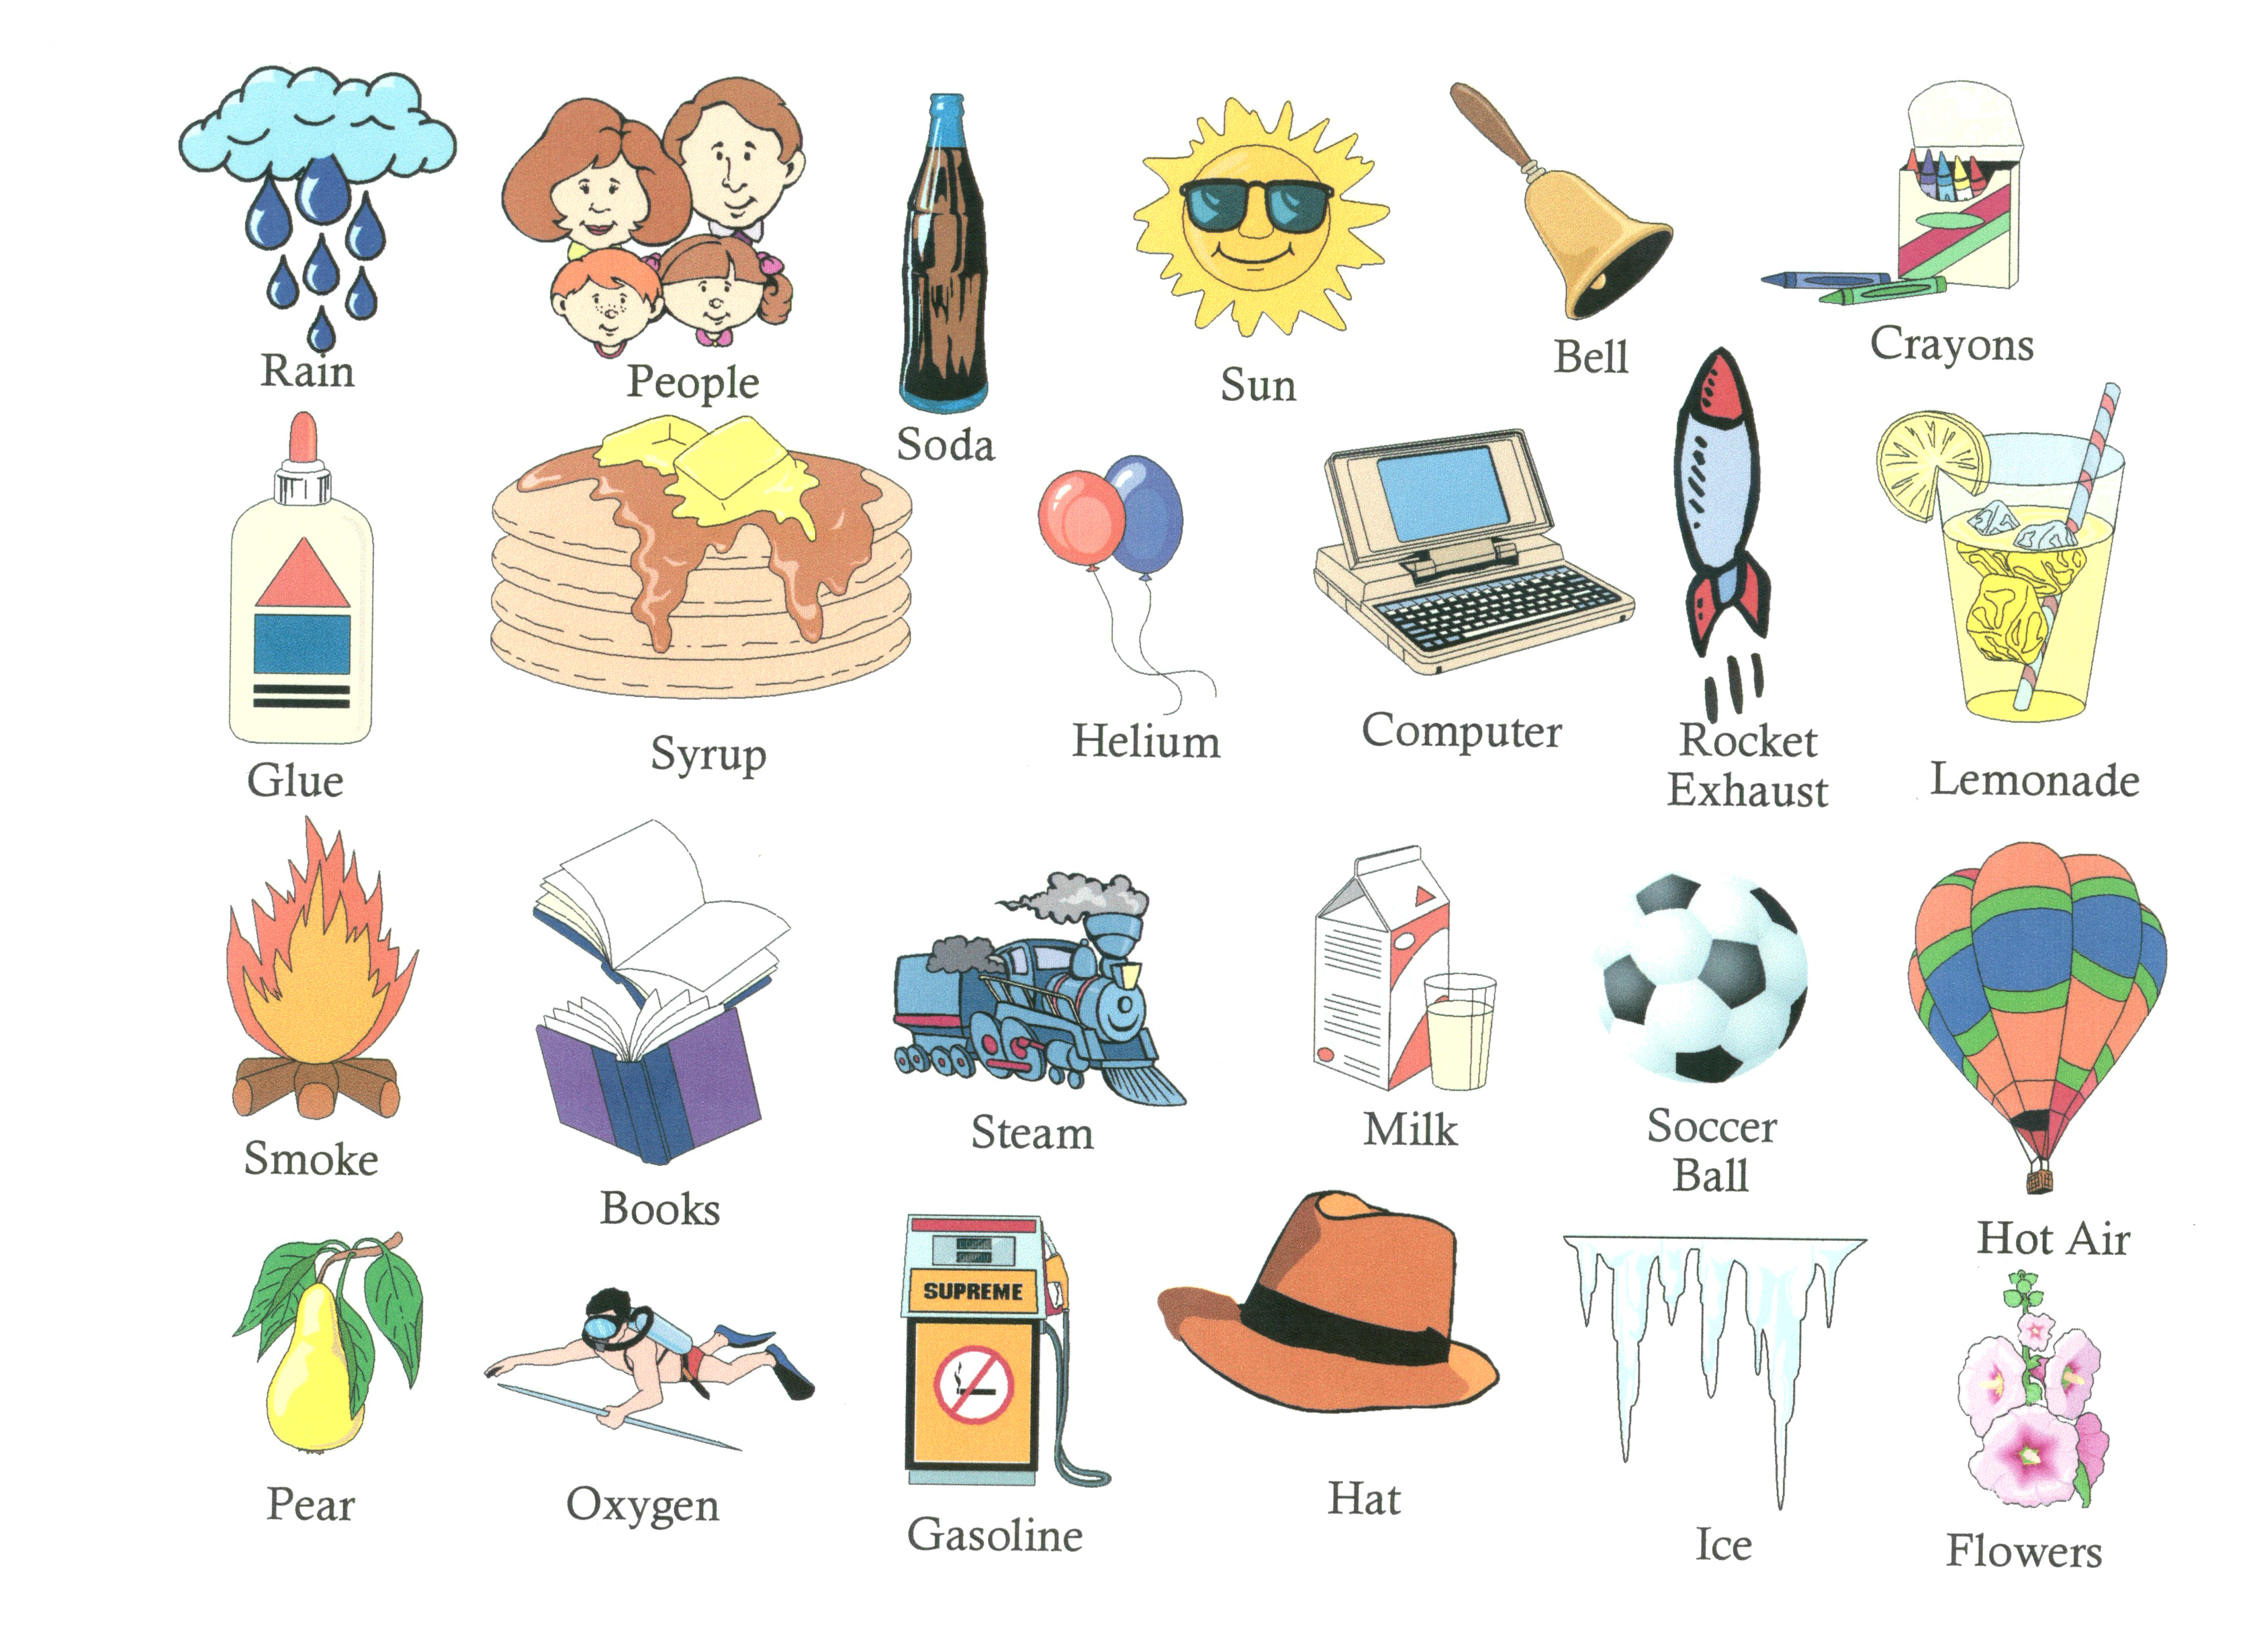 Liquid clipart gas Clipart of ClipartFest gas Examples